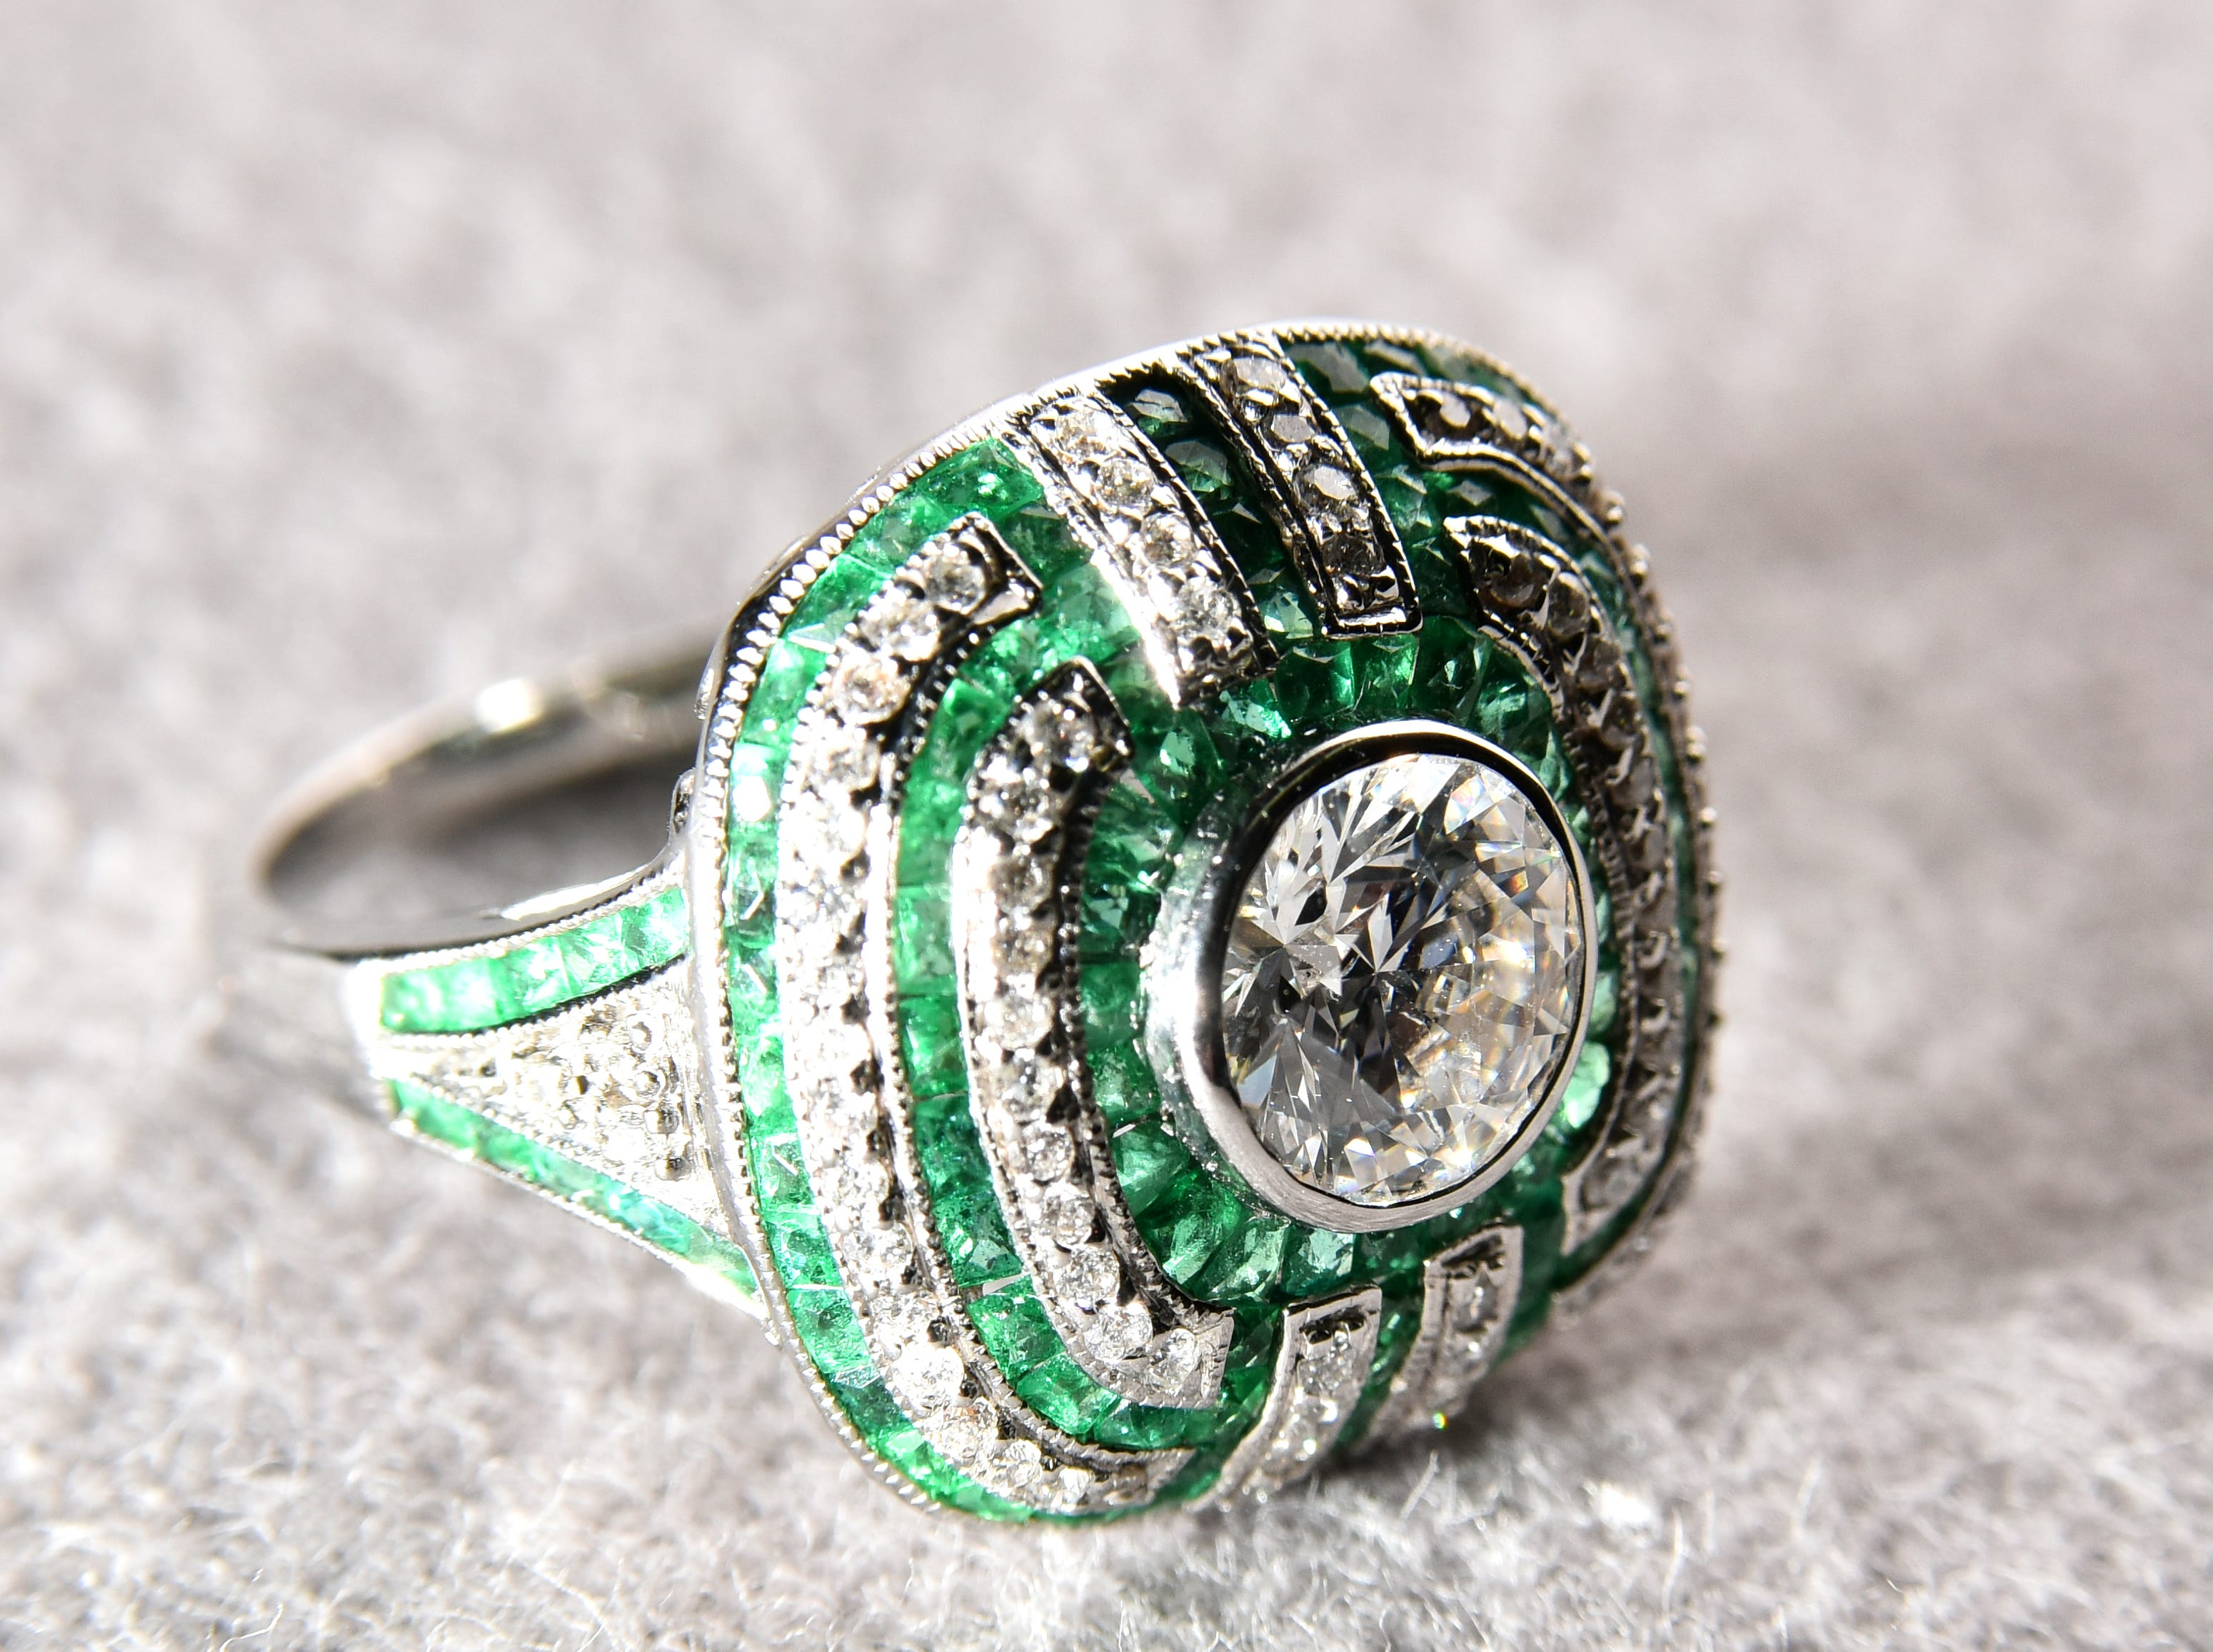 An emerald and diamond ring from Pace Jewelers.